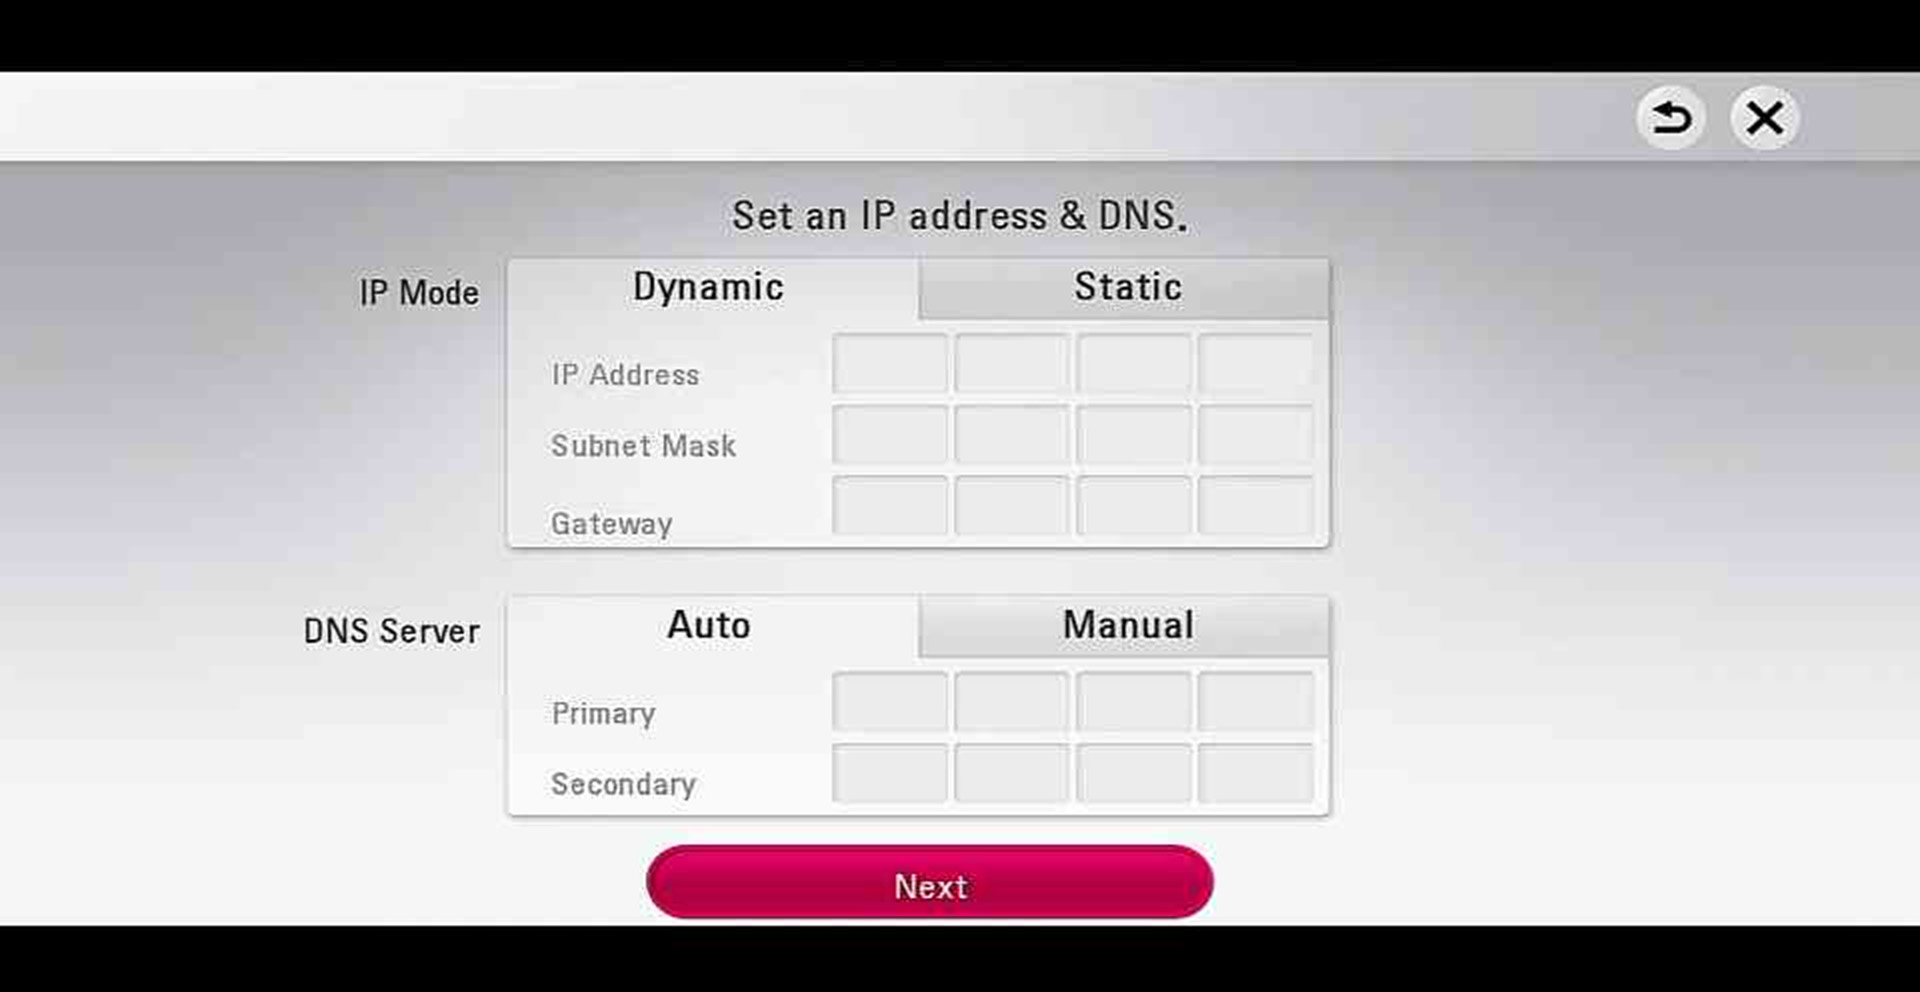 Setting Up Your Wireless Network - Blu-ray | LG USA Support